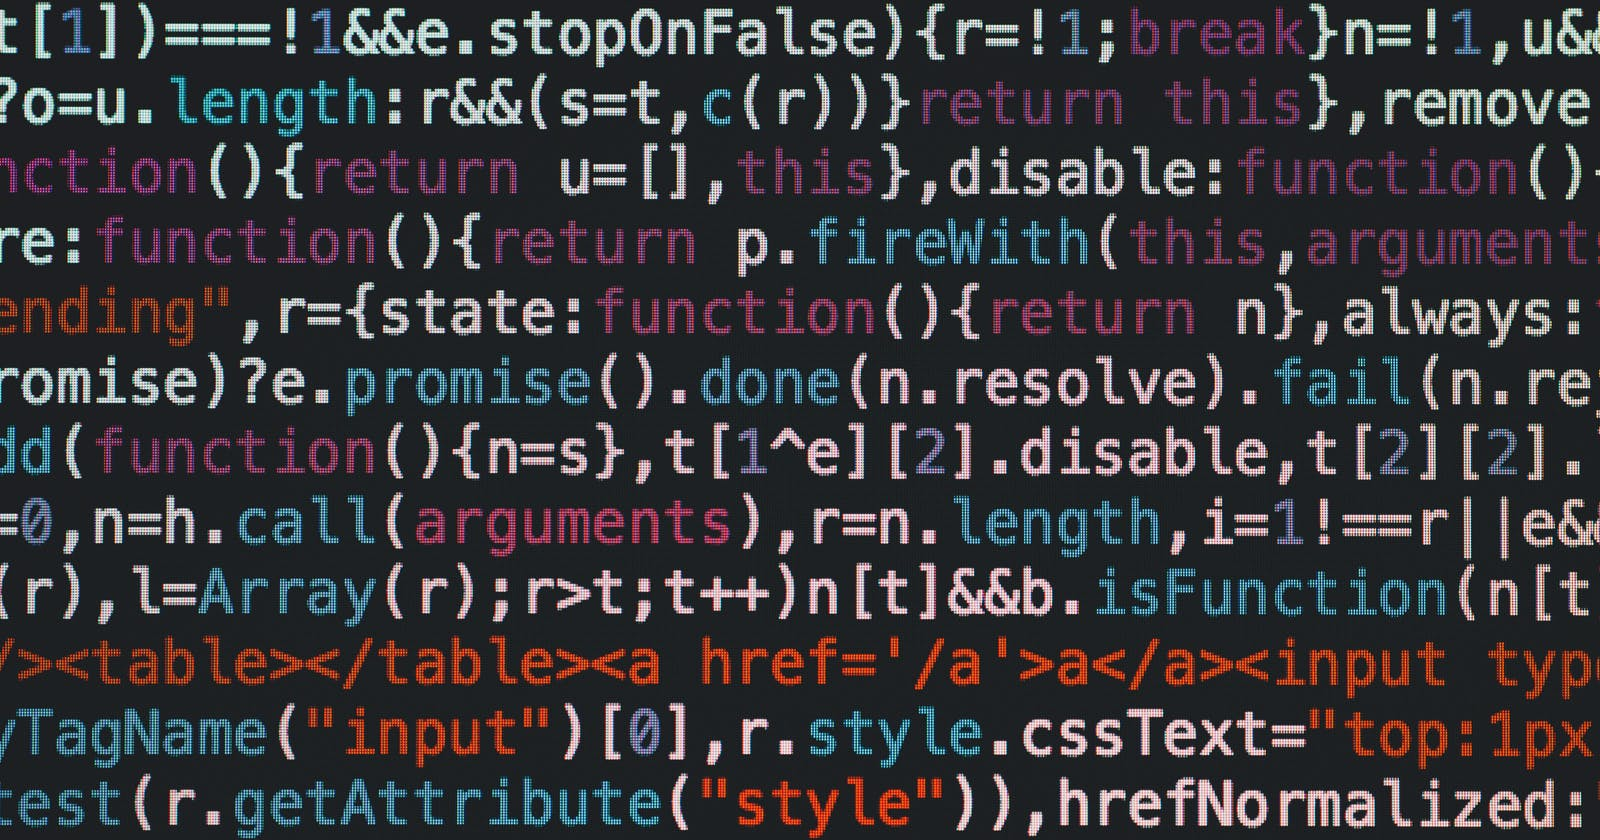 Code Fix #1: JavaScript, HTML Elements, and Variable Assignments